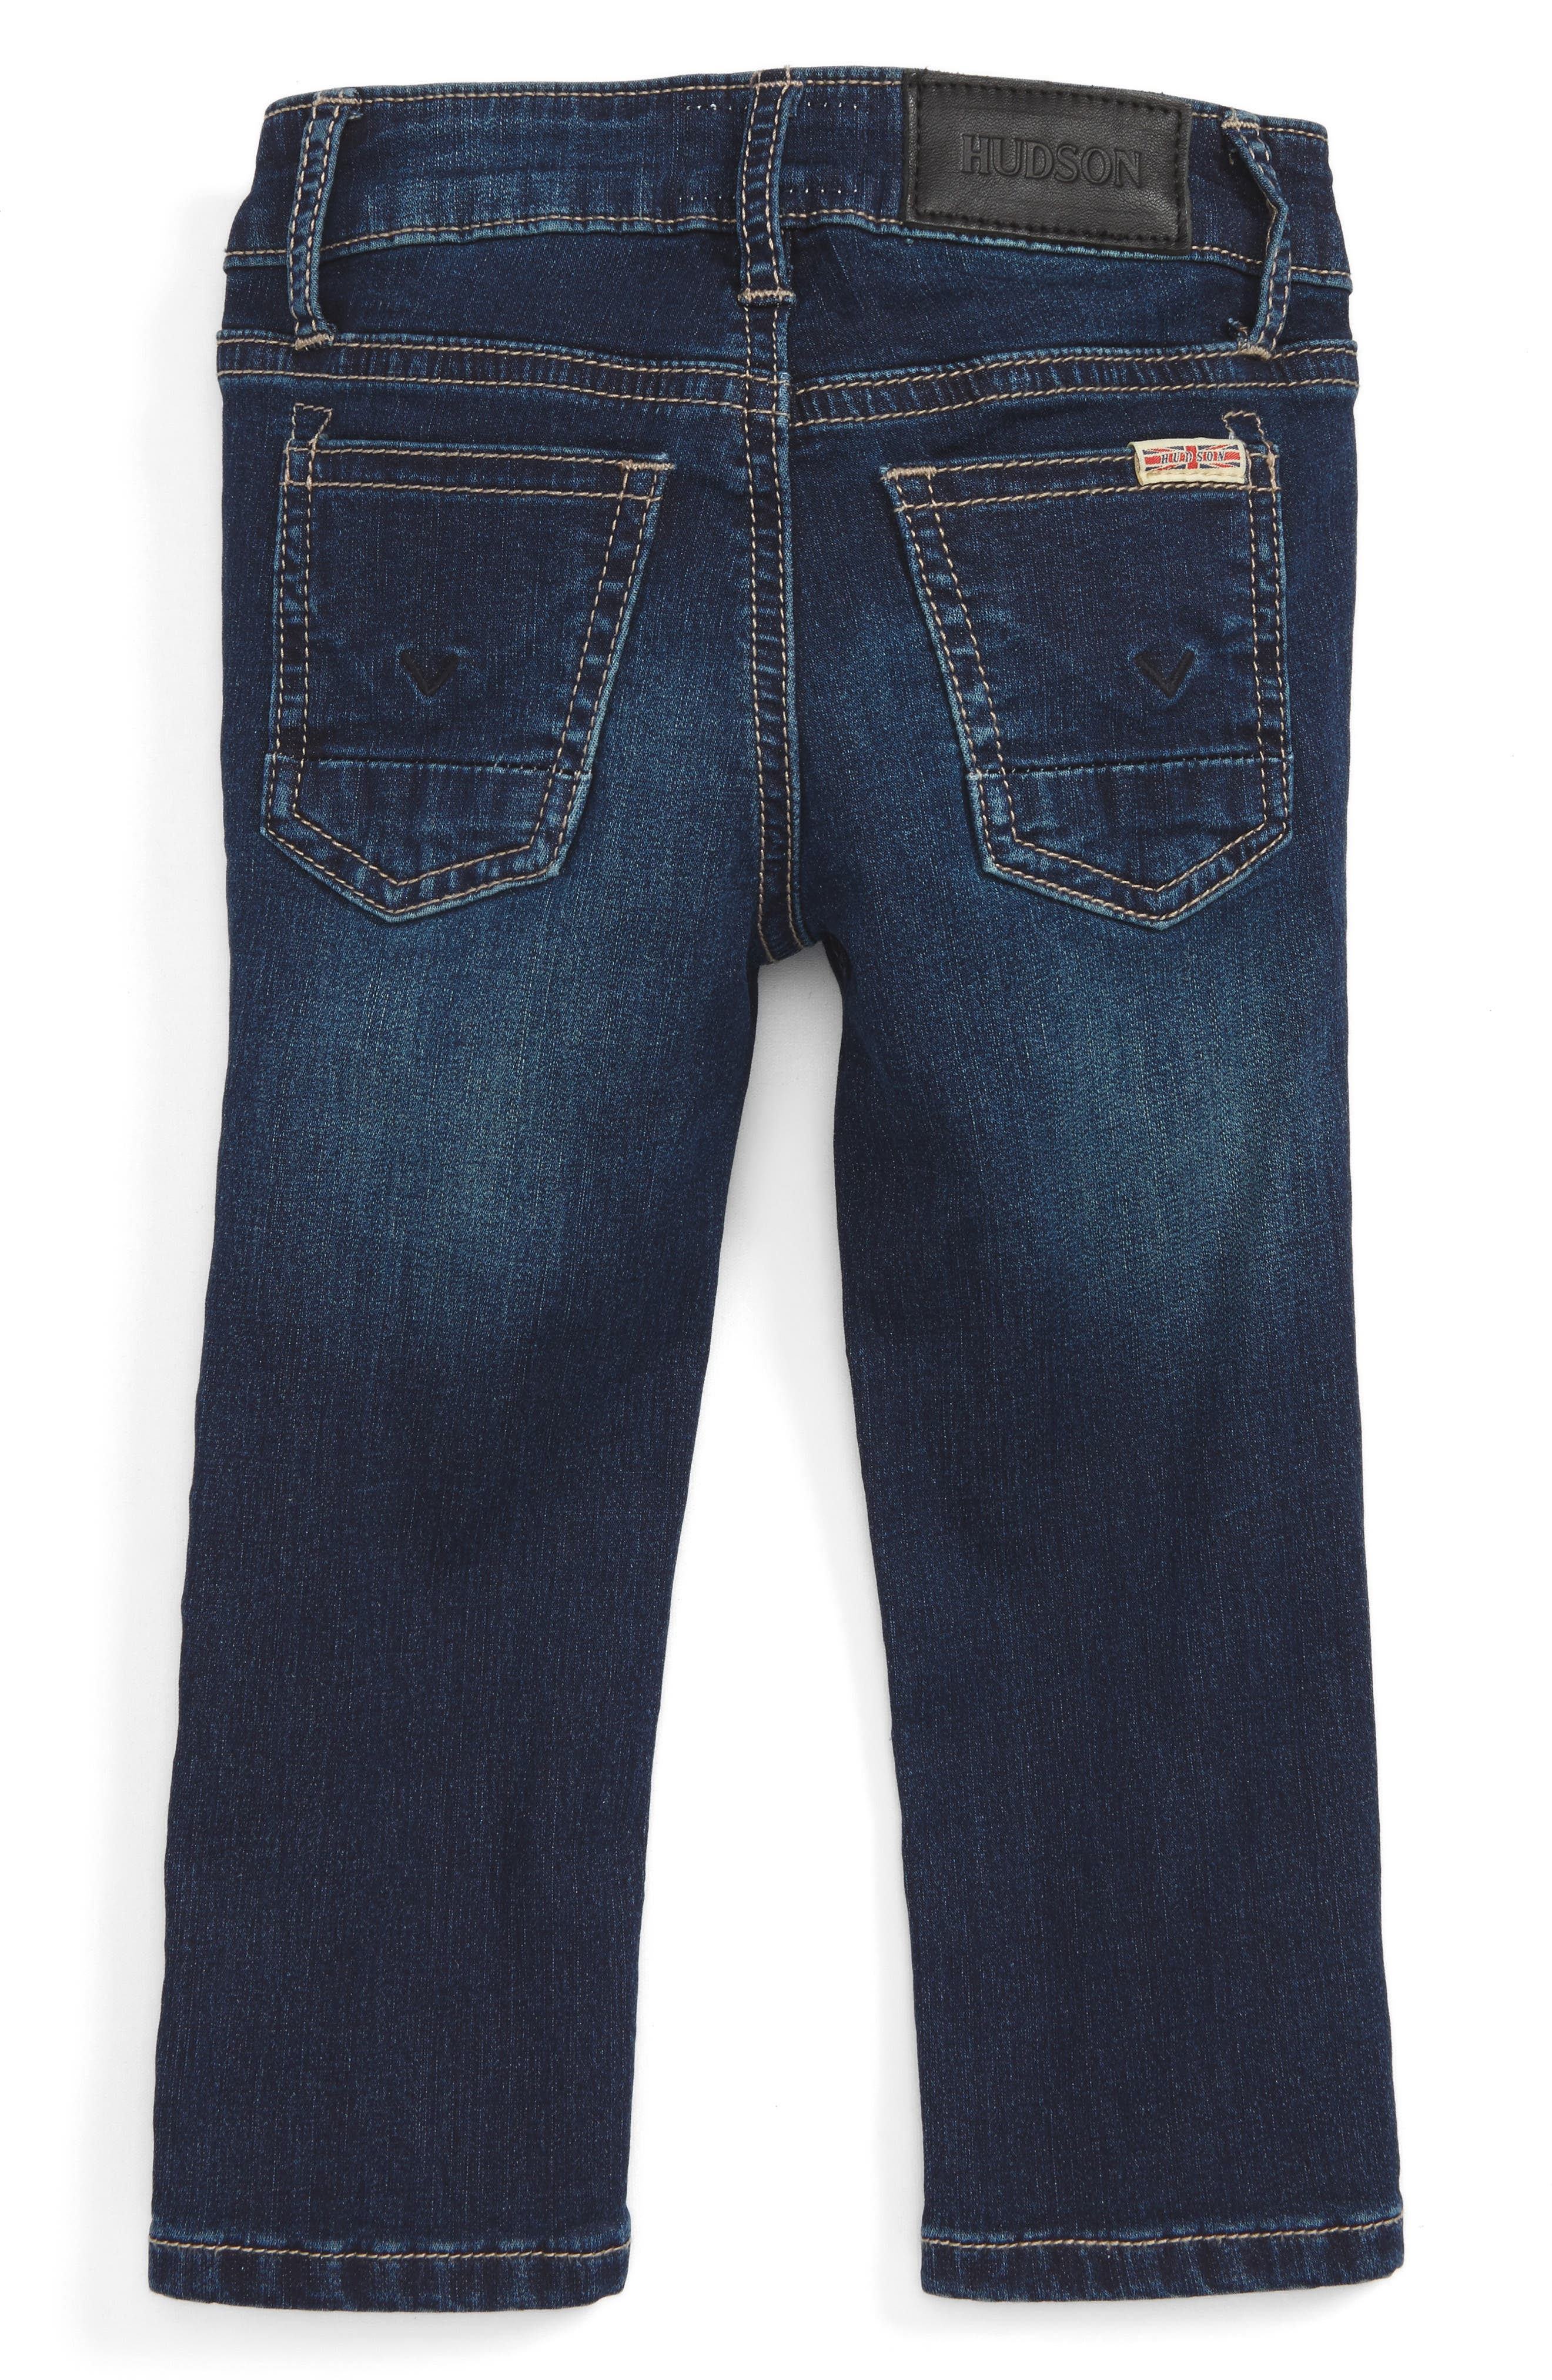 Parker French Terry Jeans,                             Alternate thumbnail 2, color,                             439